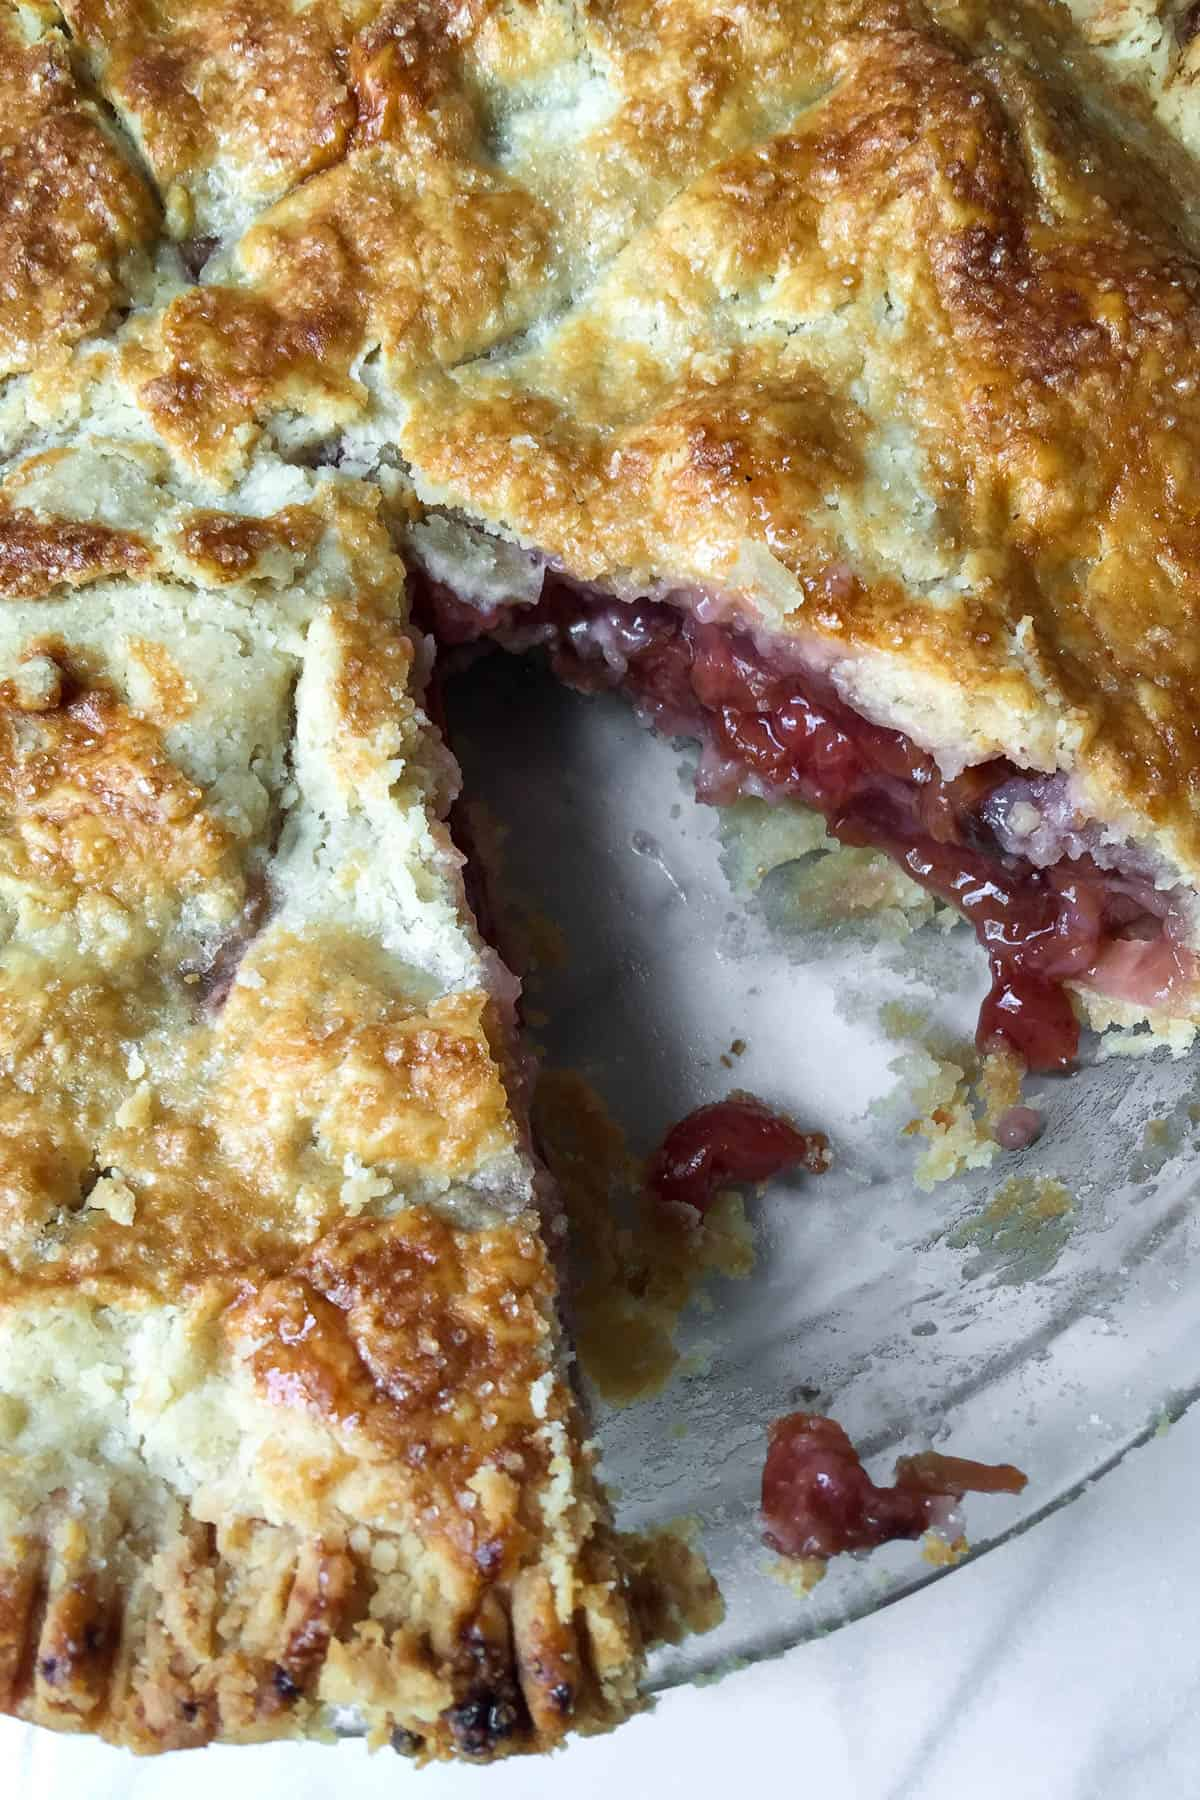 Close up of cherry pie with a piece cut out.